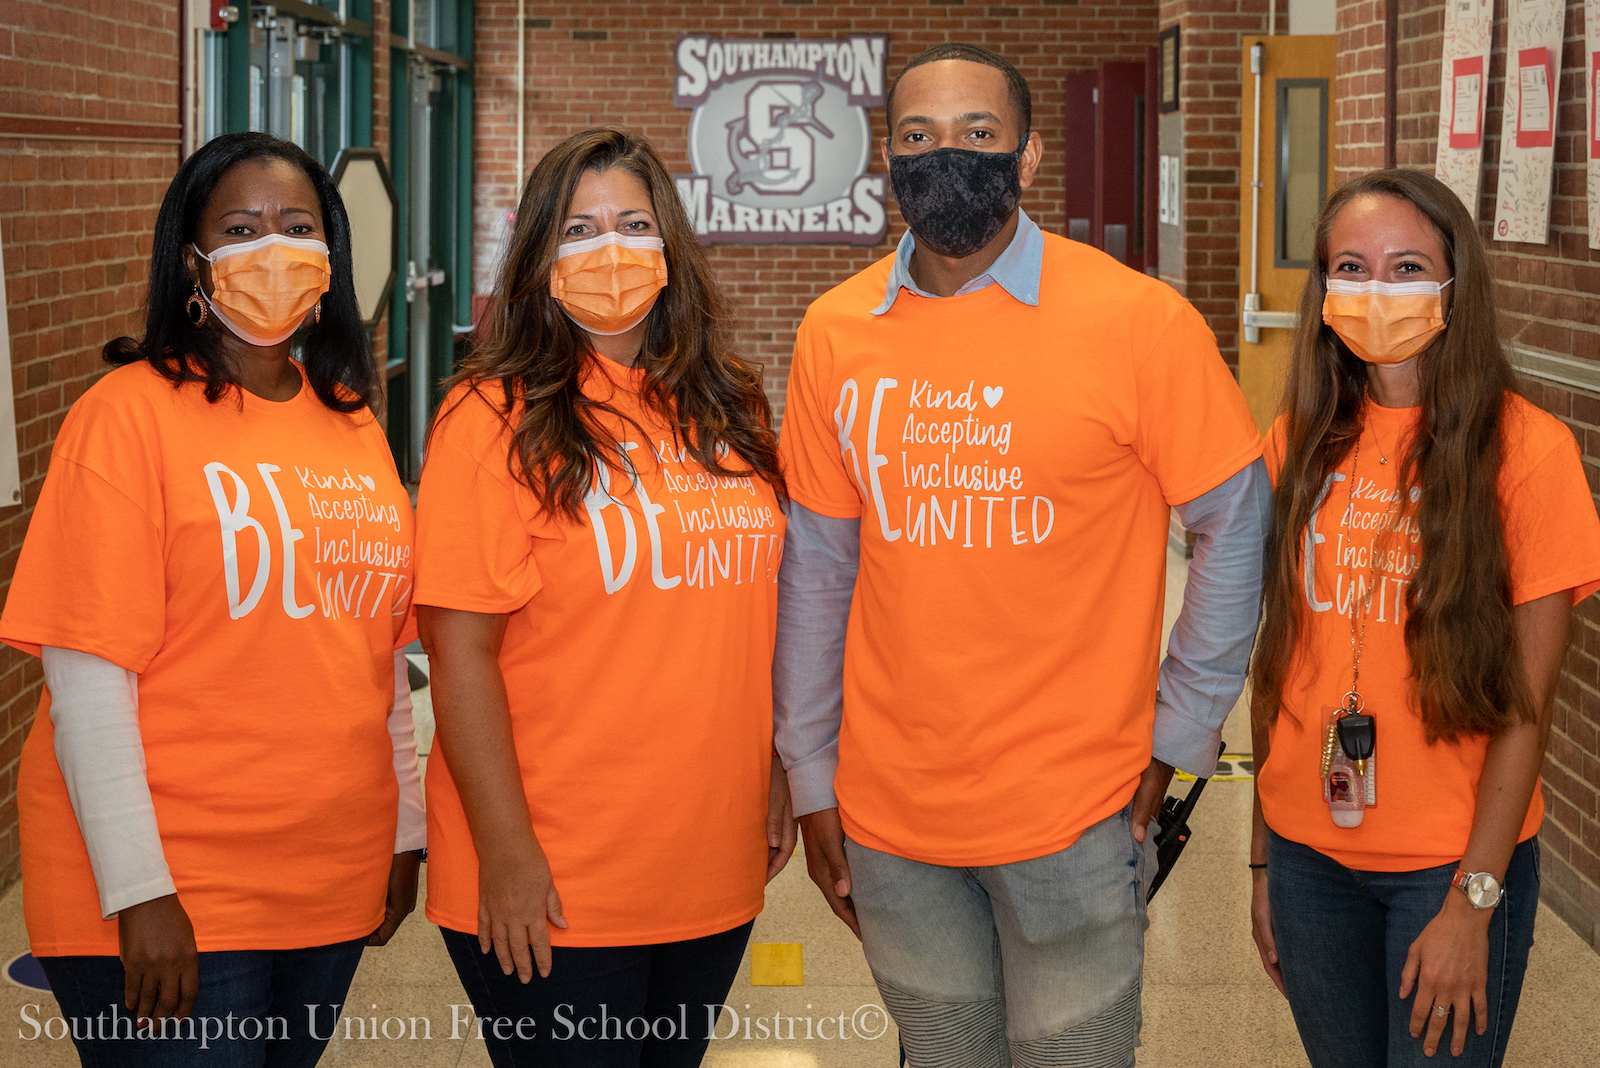 """Southampton Intermediate School marked Unity Day on October 21, as well as the day following, with staff and students wearing orange shirts and masks. The two-day event, spearheaded by the guidance department, also encouraged everyone to write something positive about themselves on a paper strip that would be included in a """"chain of unity"""" displayed in the school's lobby."""